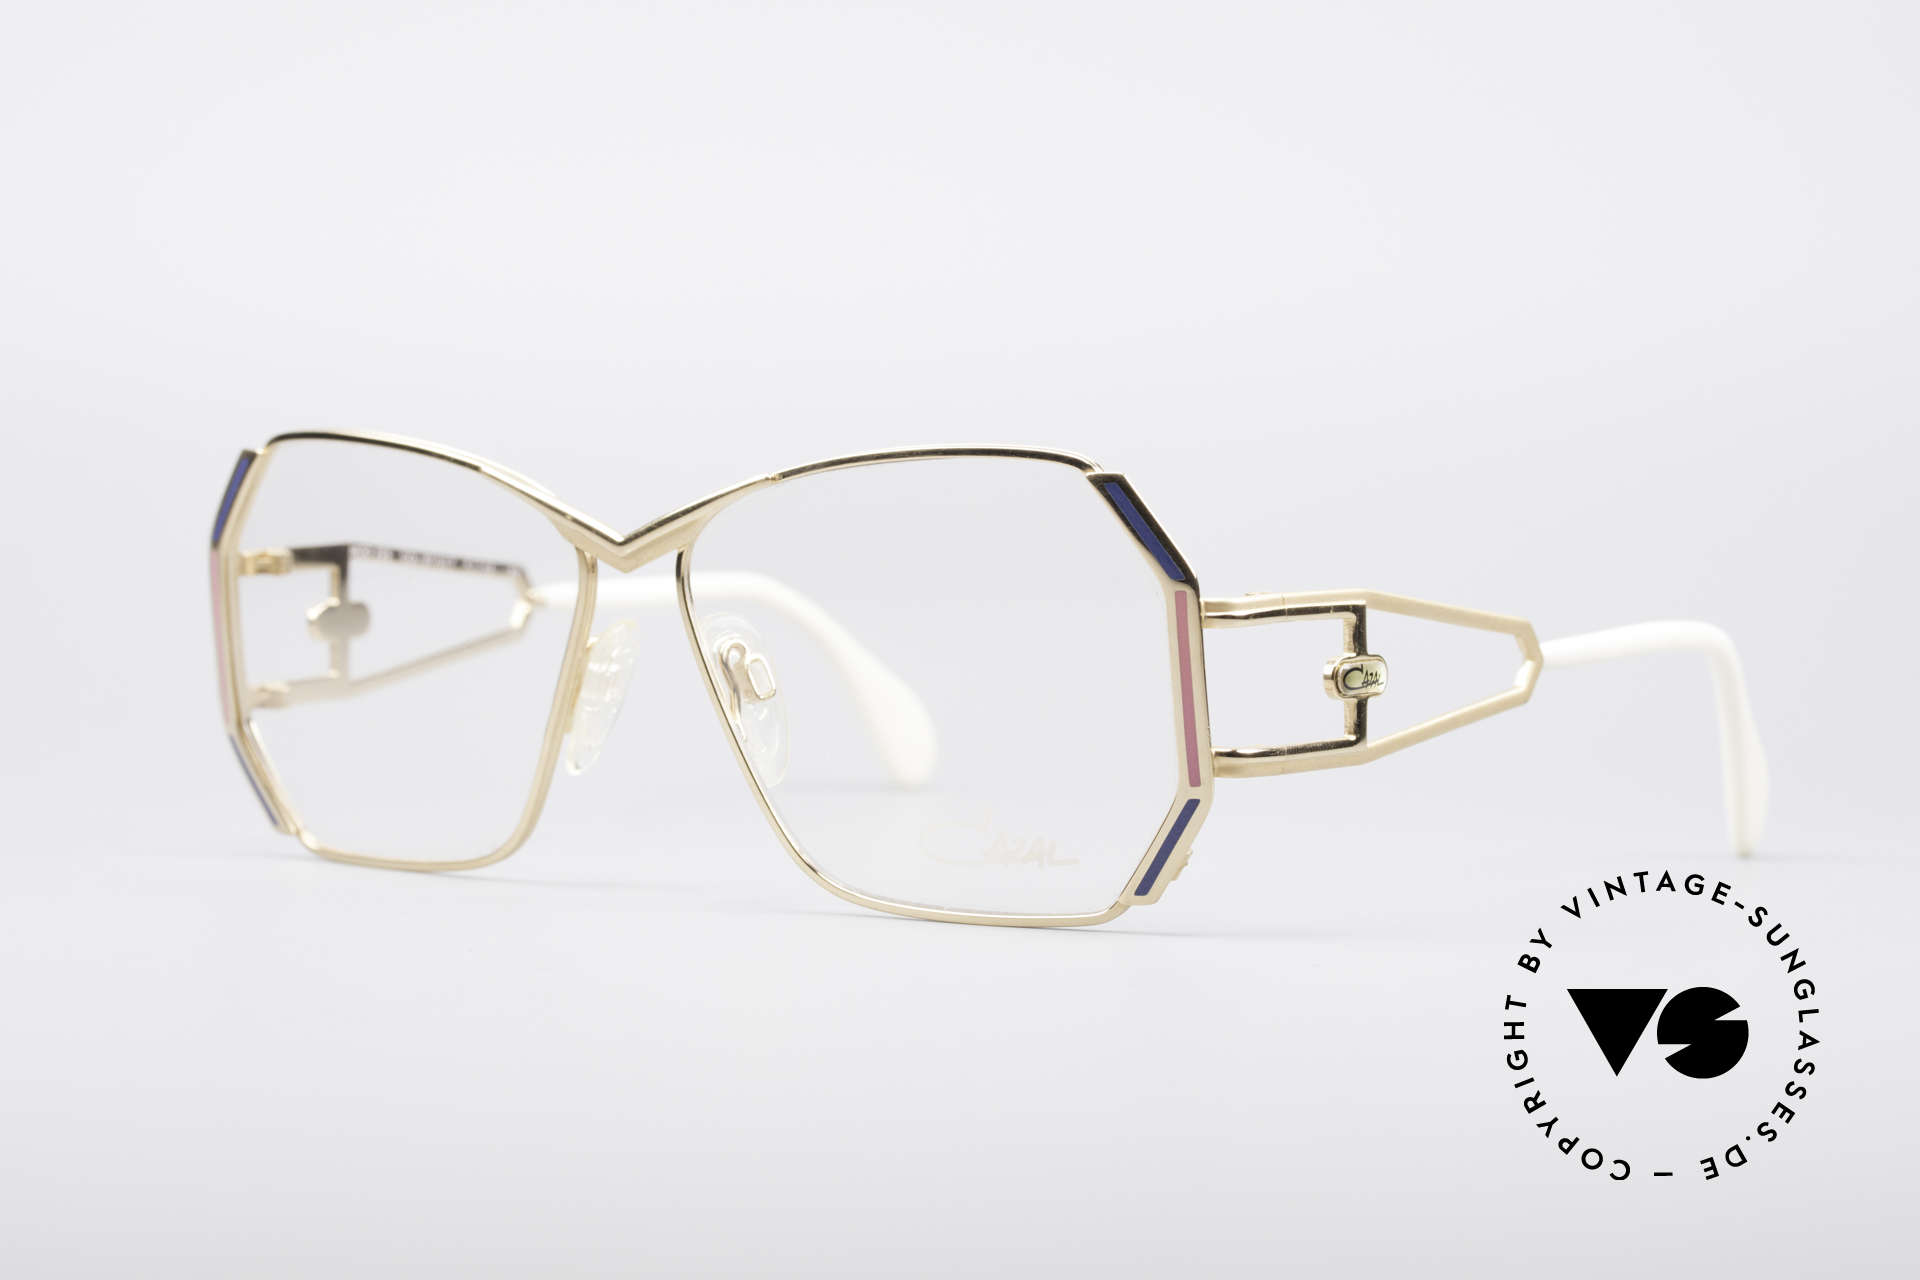 Cazal 225 80's Old School HipHop Frame, great frame design by Cari Zalloni with fancy temples, Made for Women